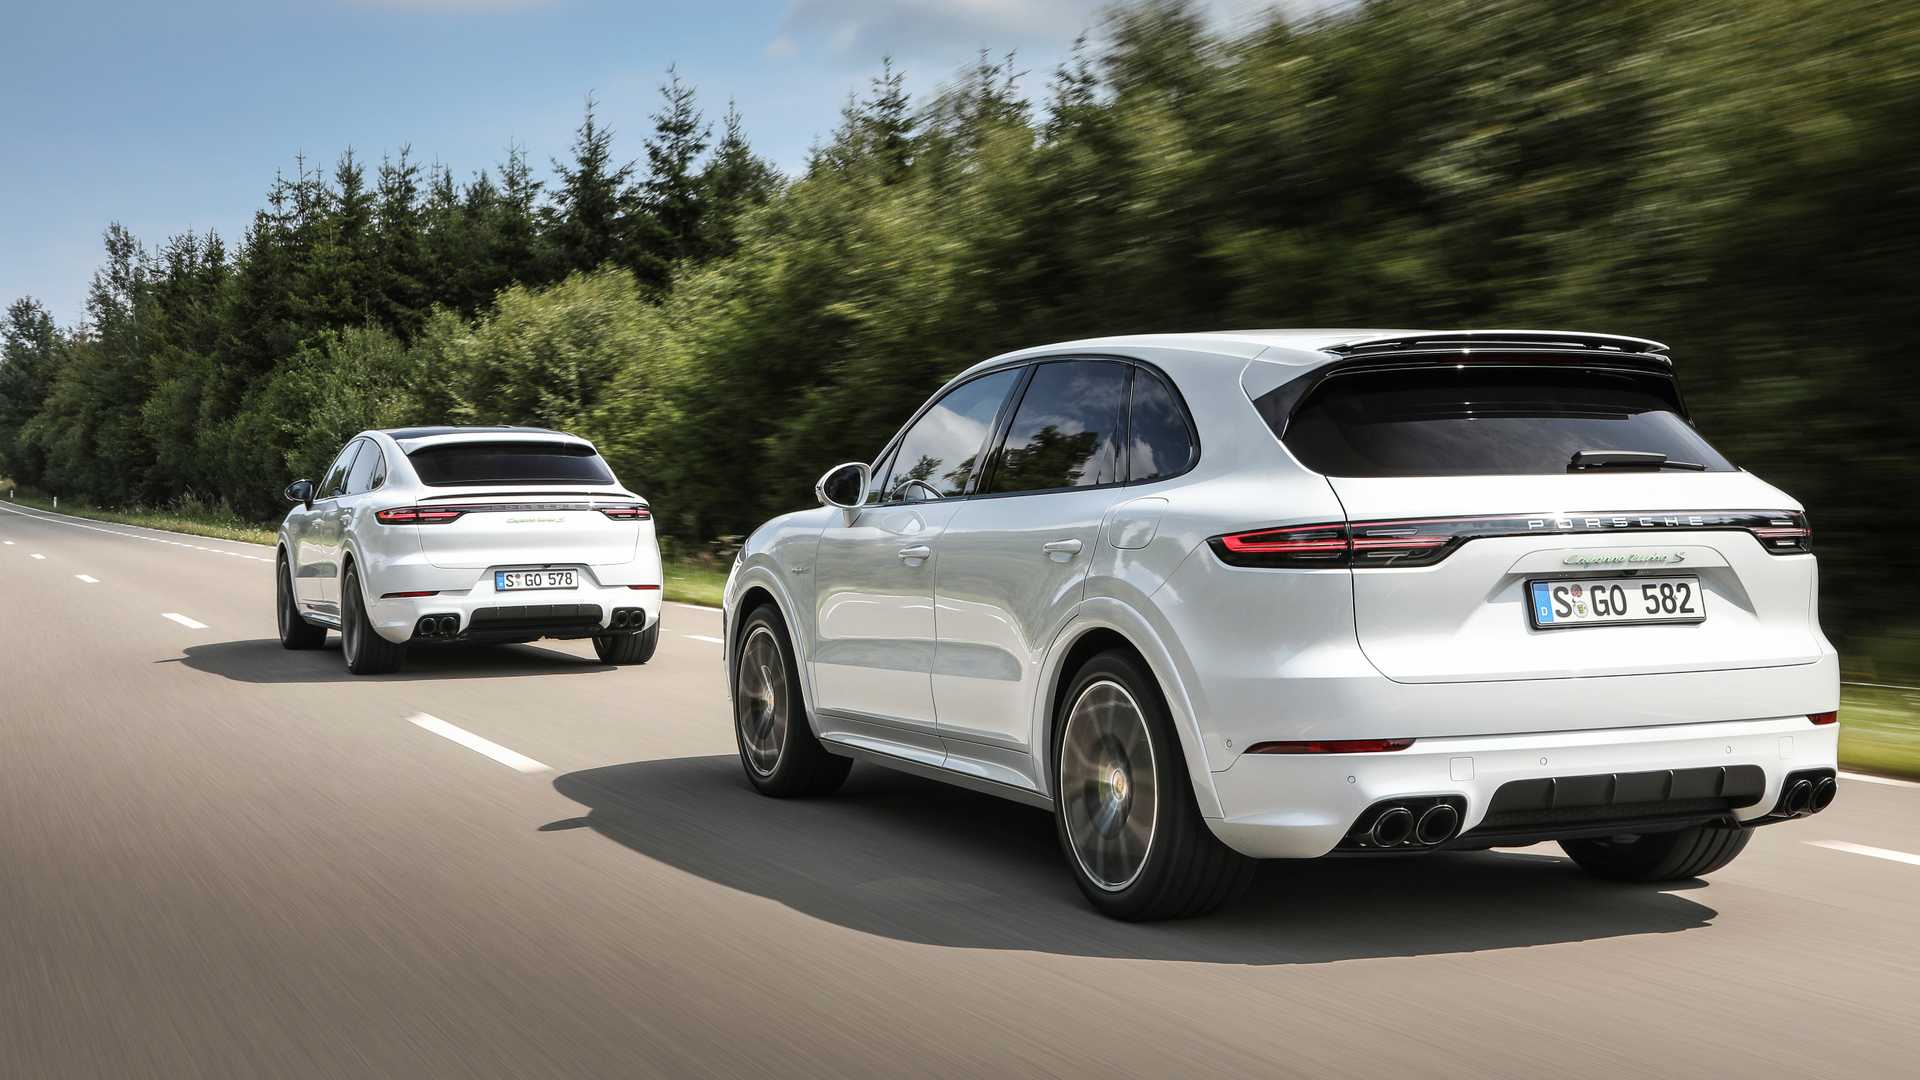 2020 Porsche Cayenne Turbo S Model